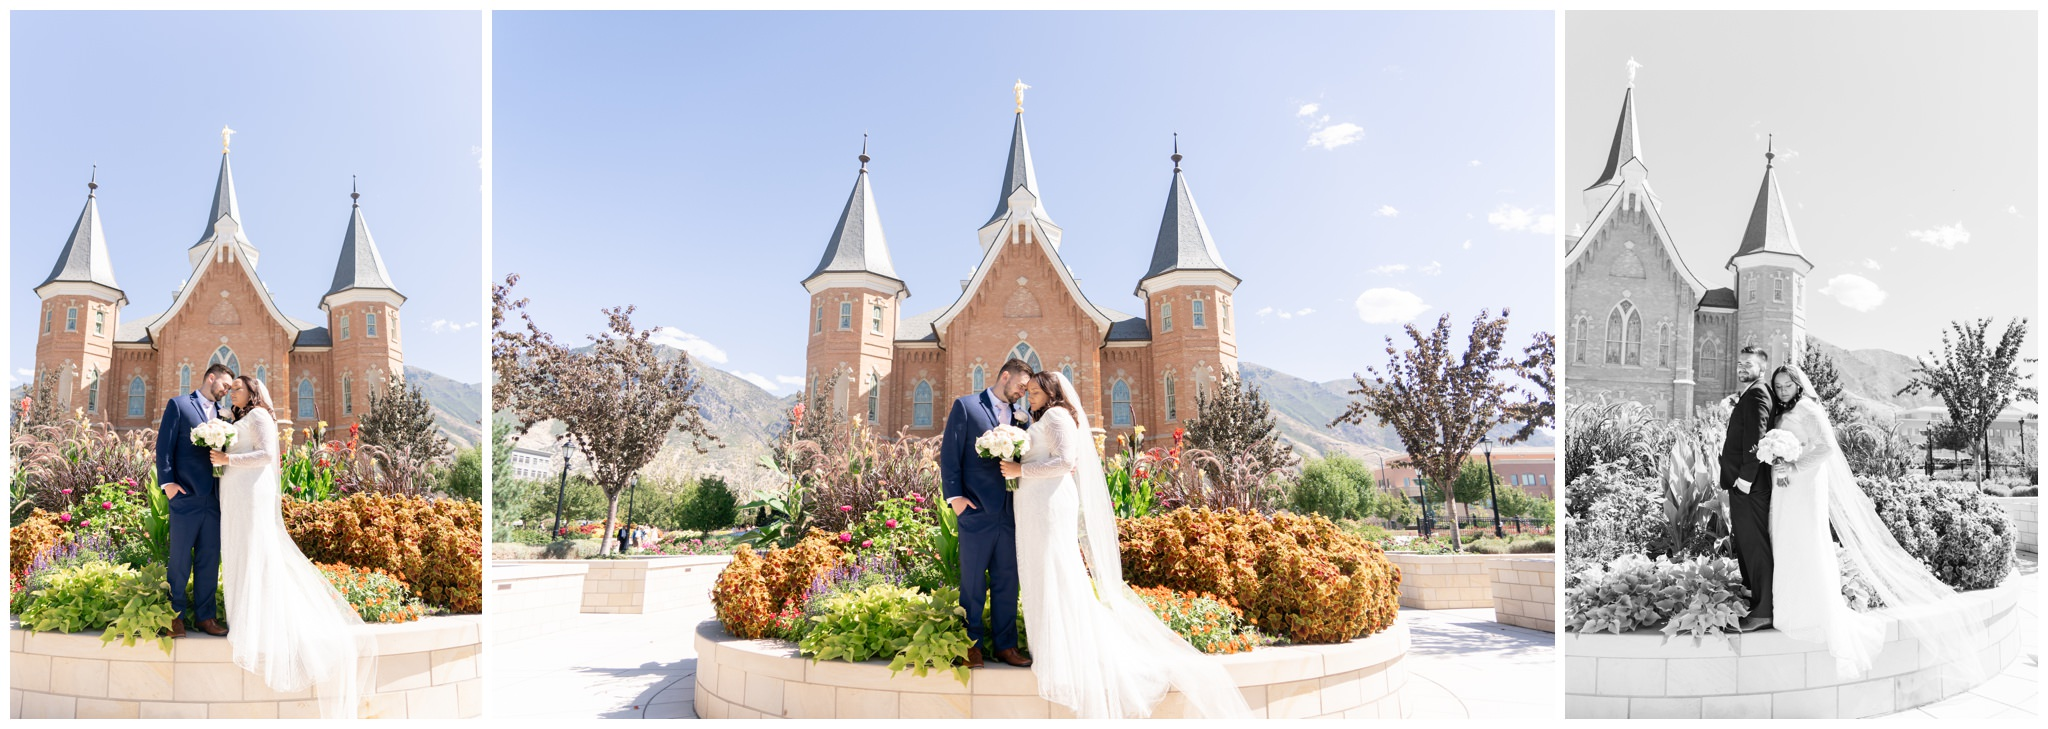 Bride and Groom at the Provo City Center Temple